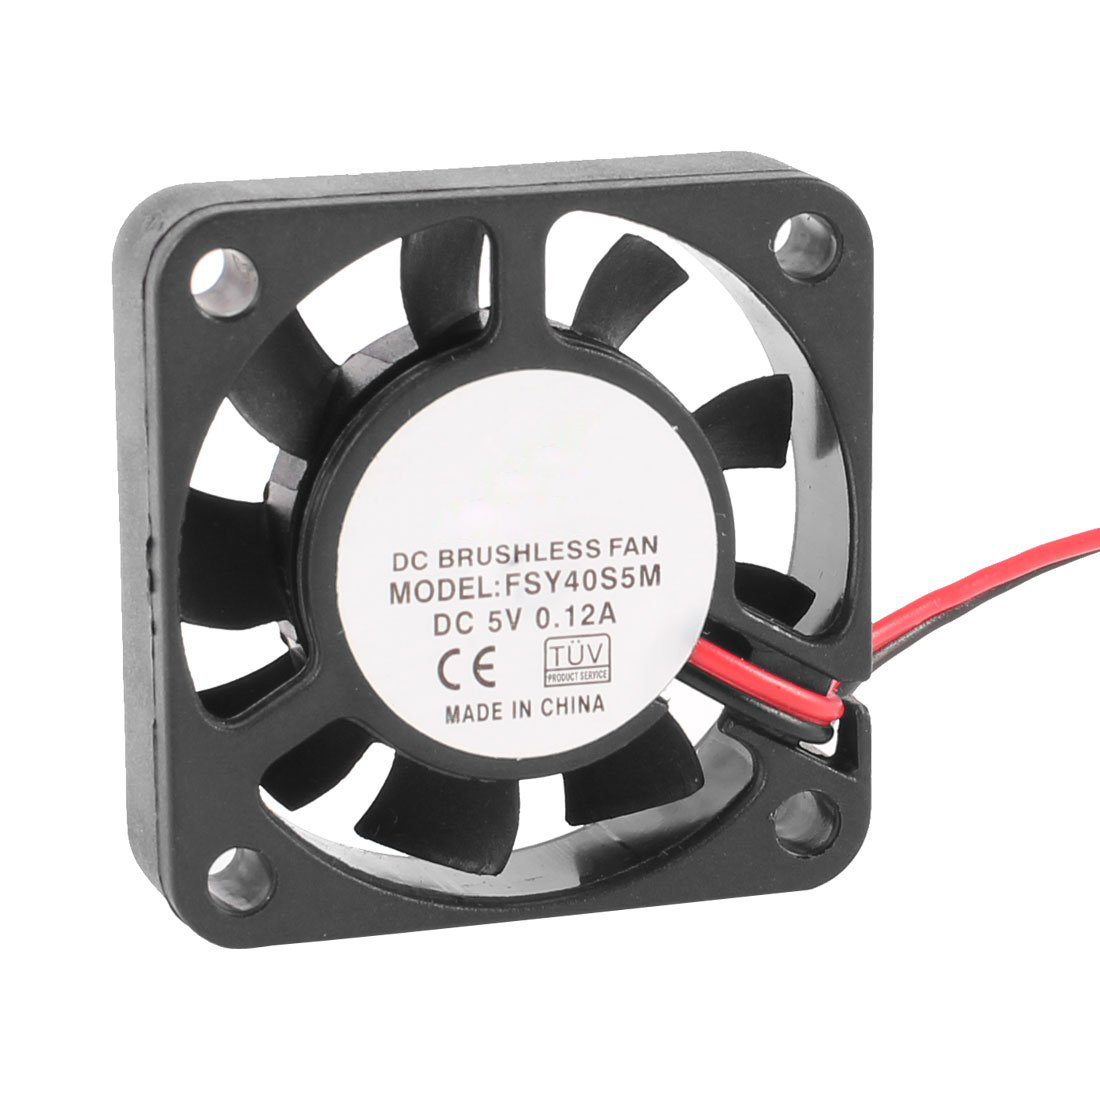 2016 New 40mm x 10mm 0.12A 2Pin 5V DC Brushless Sleeve Bearing Cooling Fan maitech dc 12 v 0 1a cooling fan red silver